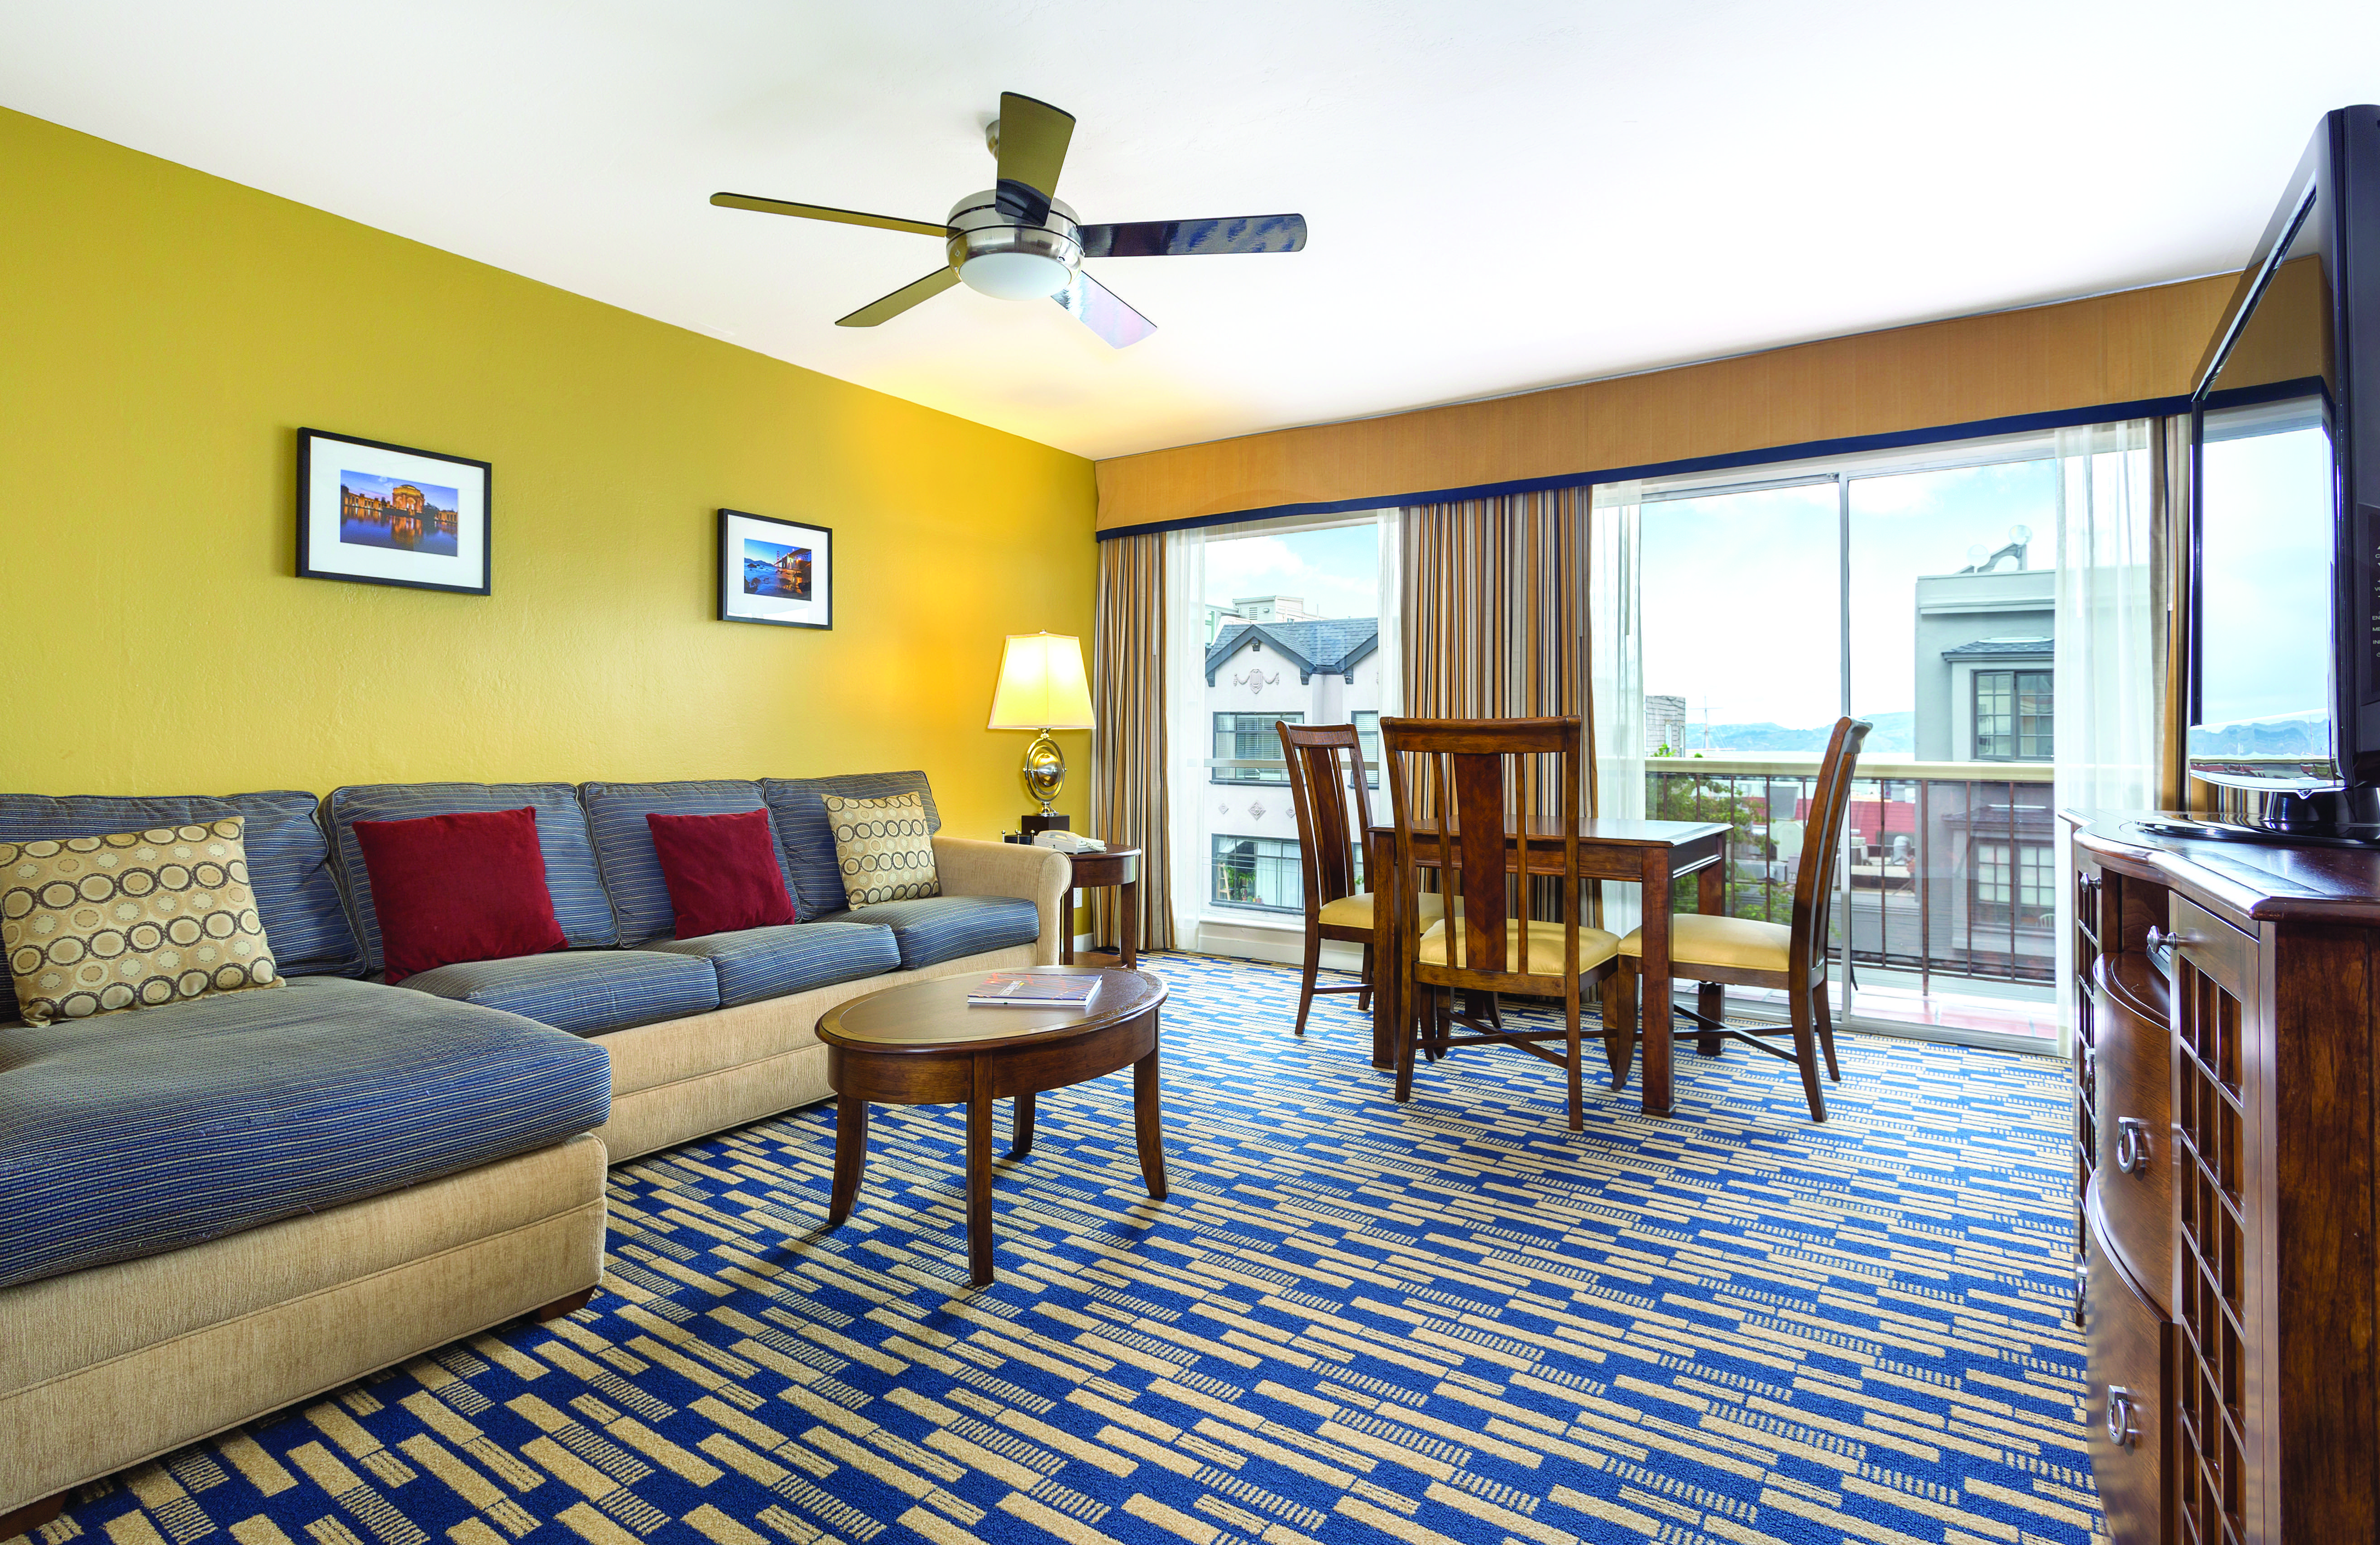 Featured The Suites at Fisherman's Wharf. 2 bedroom